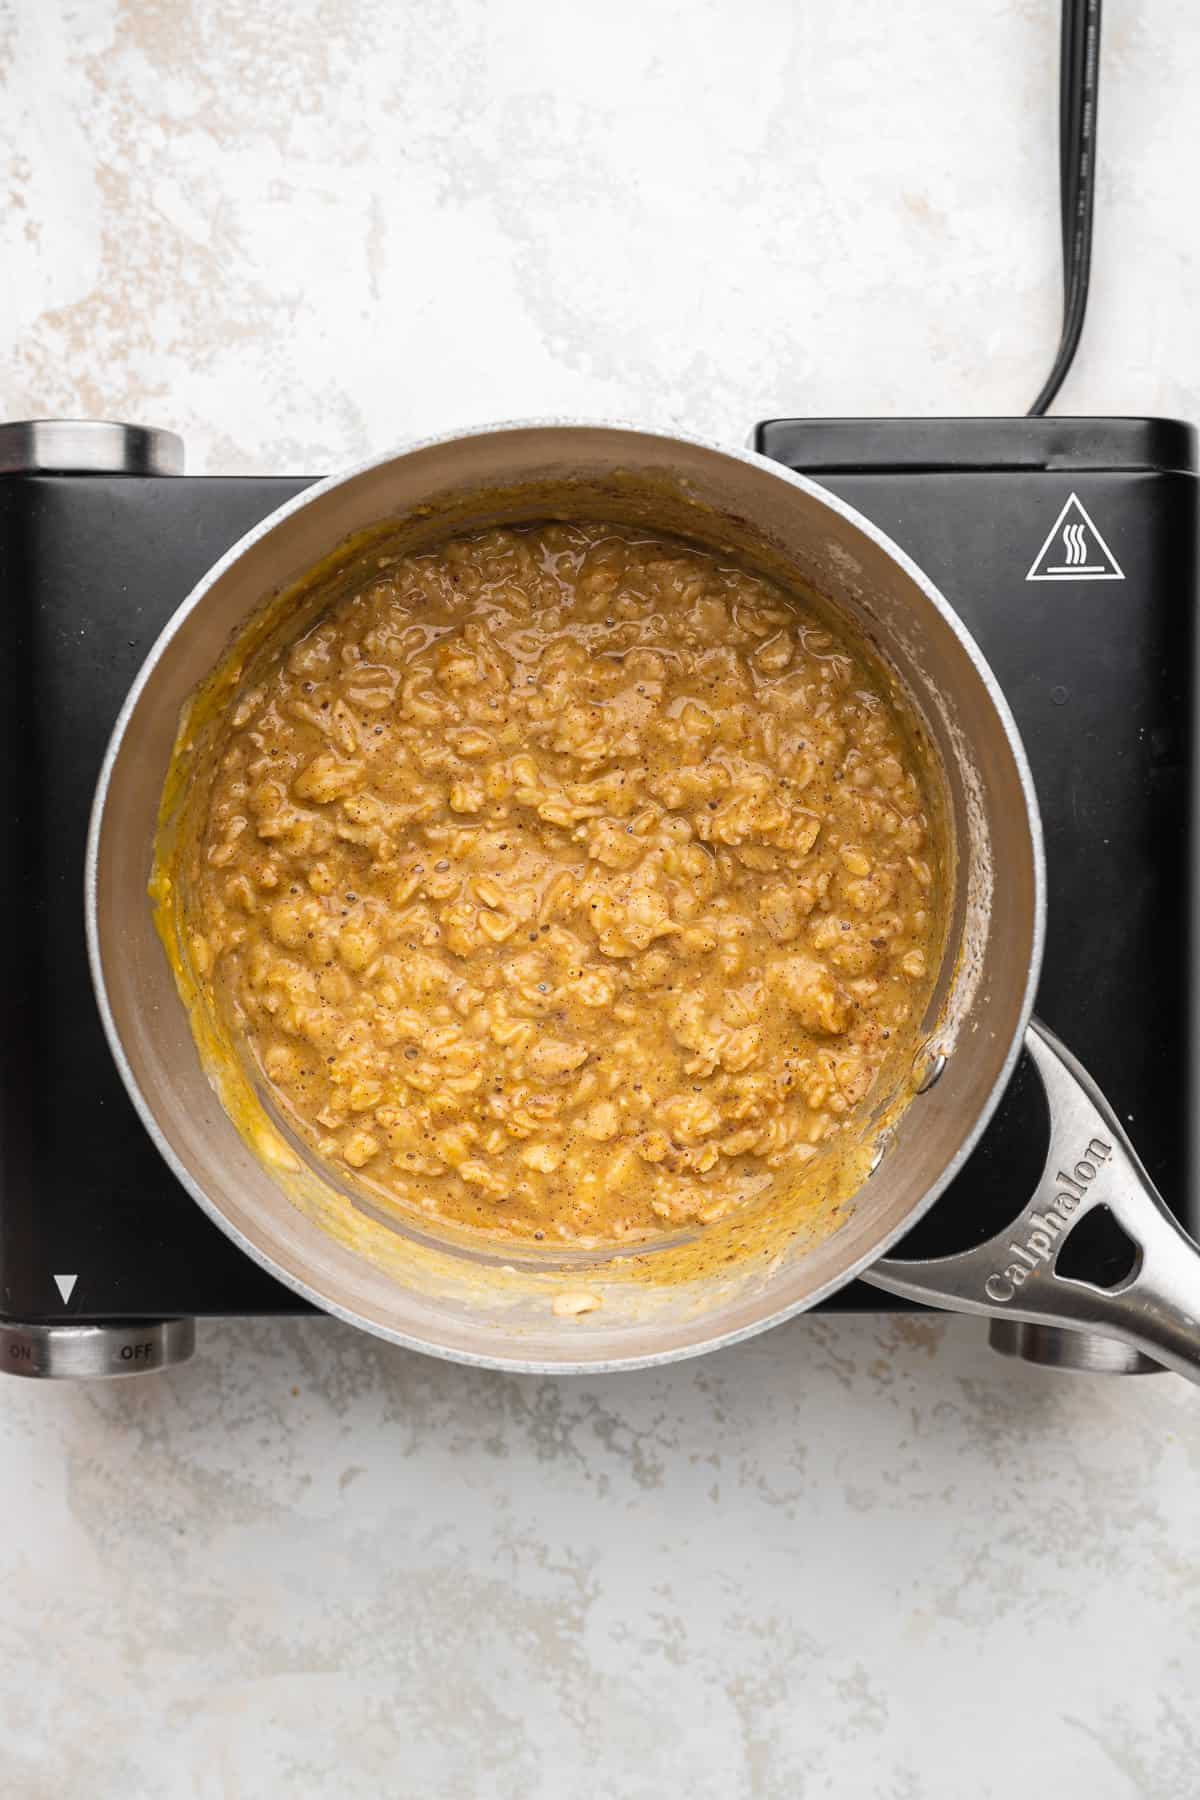 cooked vegan pumpkin oatmeal in a stainless steel pot.